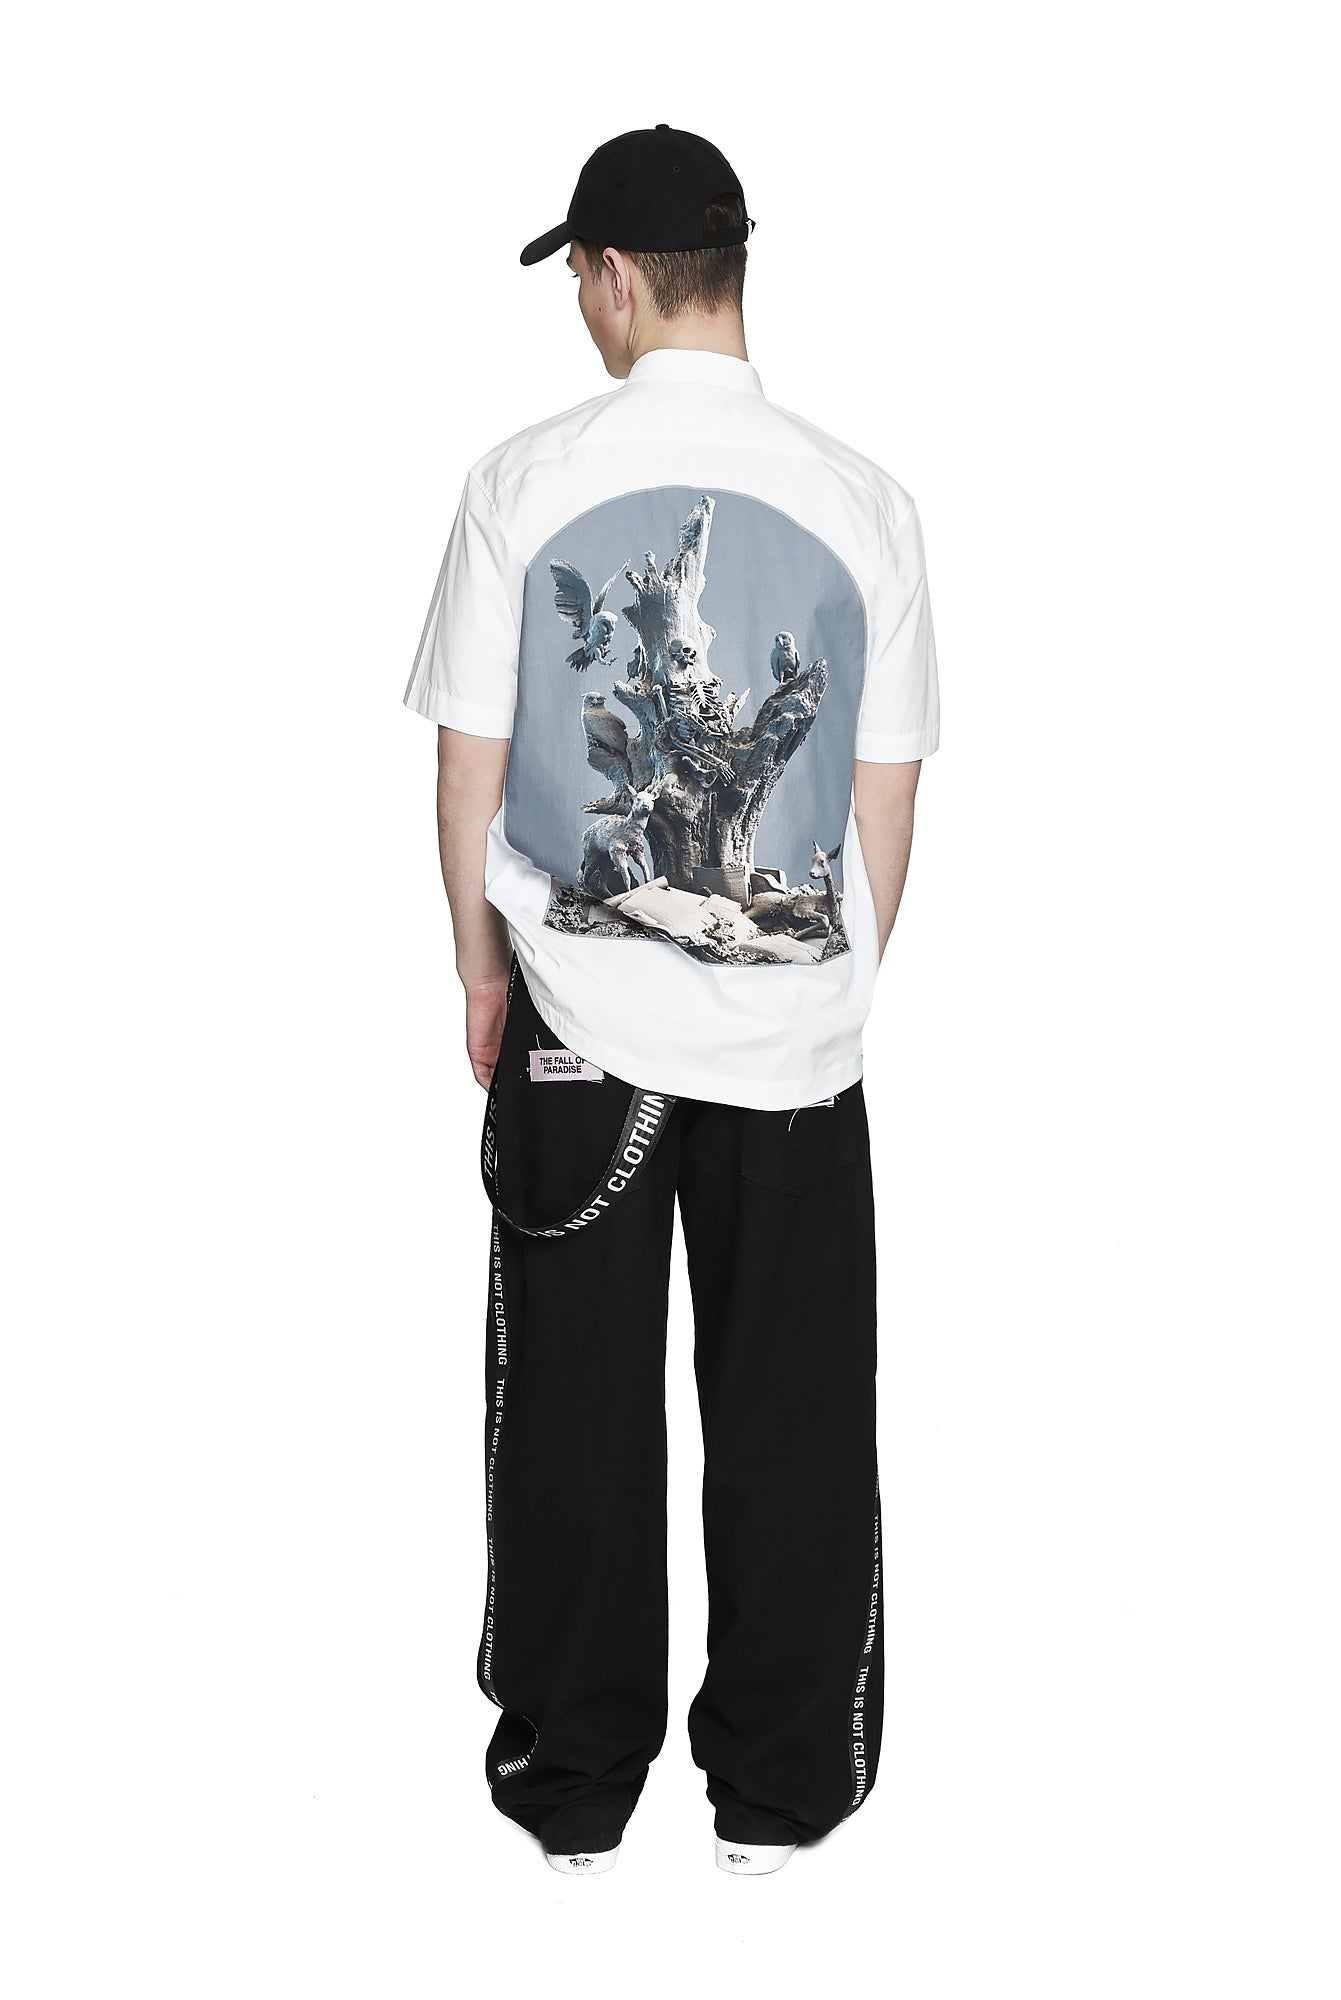 Fall of Paradise Short Sleeve Shirt - Designer Brand - This Is Not Clothing - Lookbook Photo 5